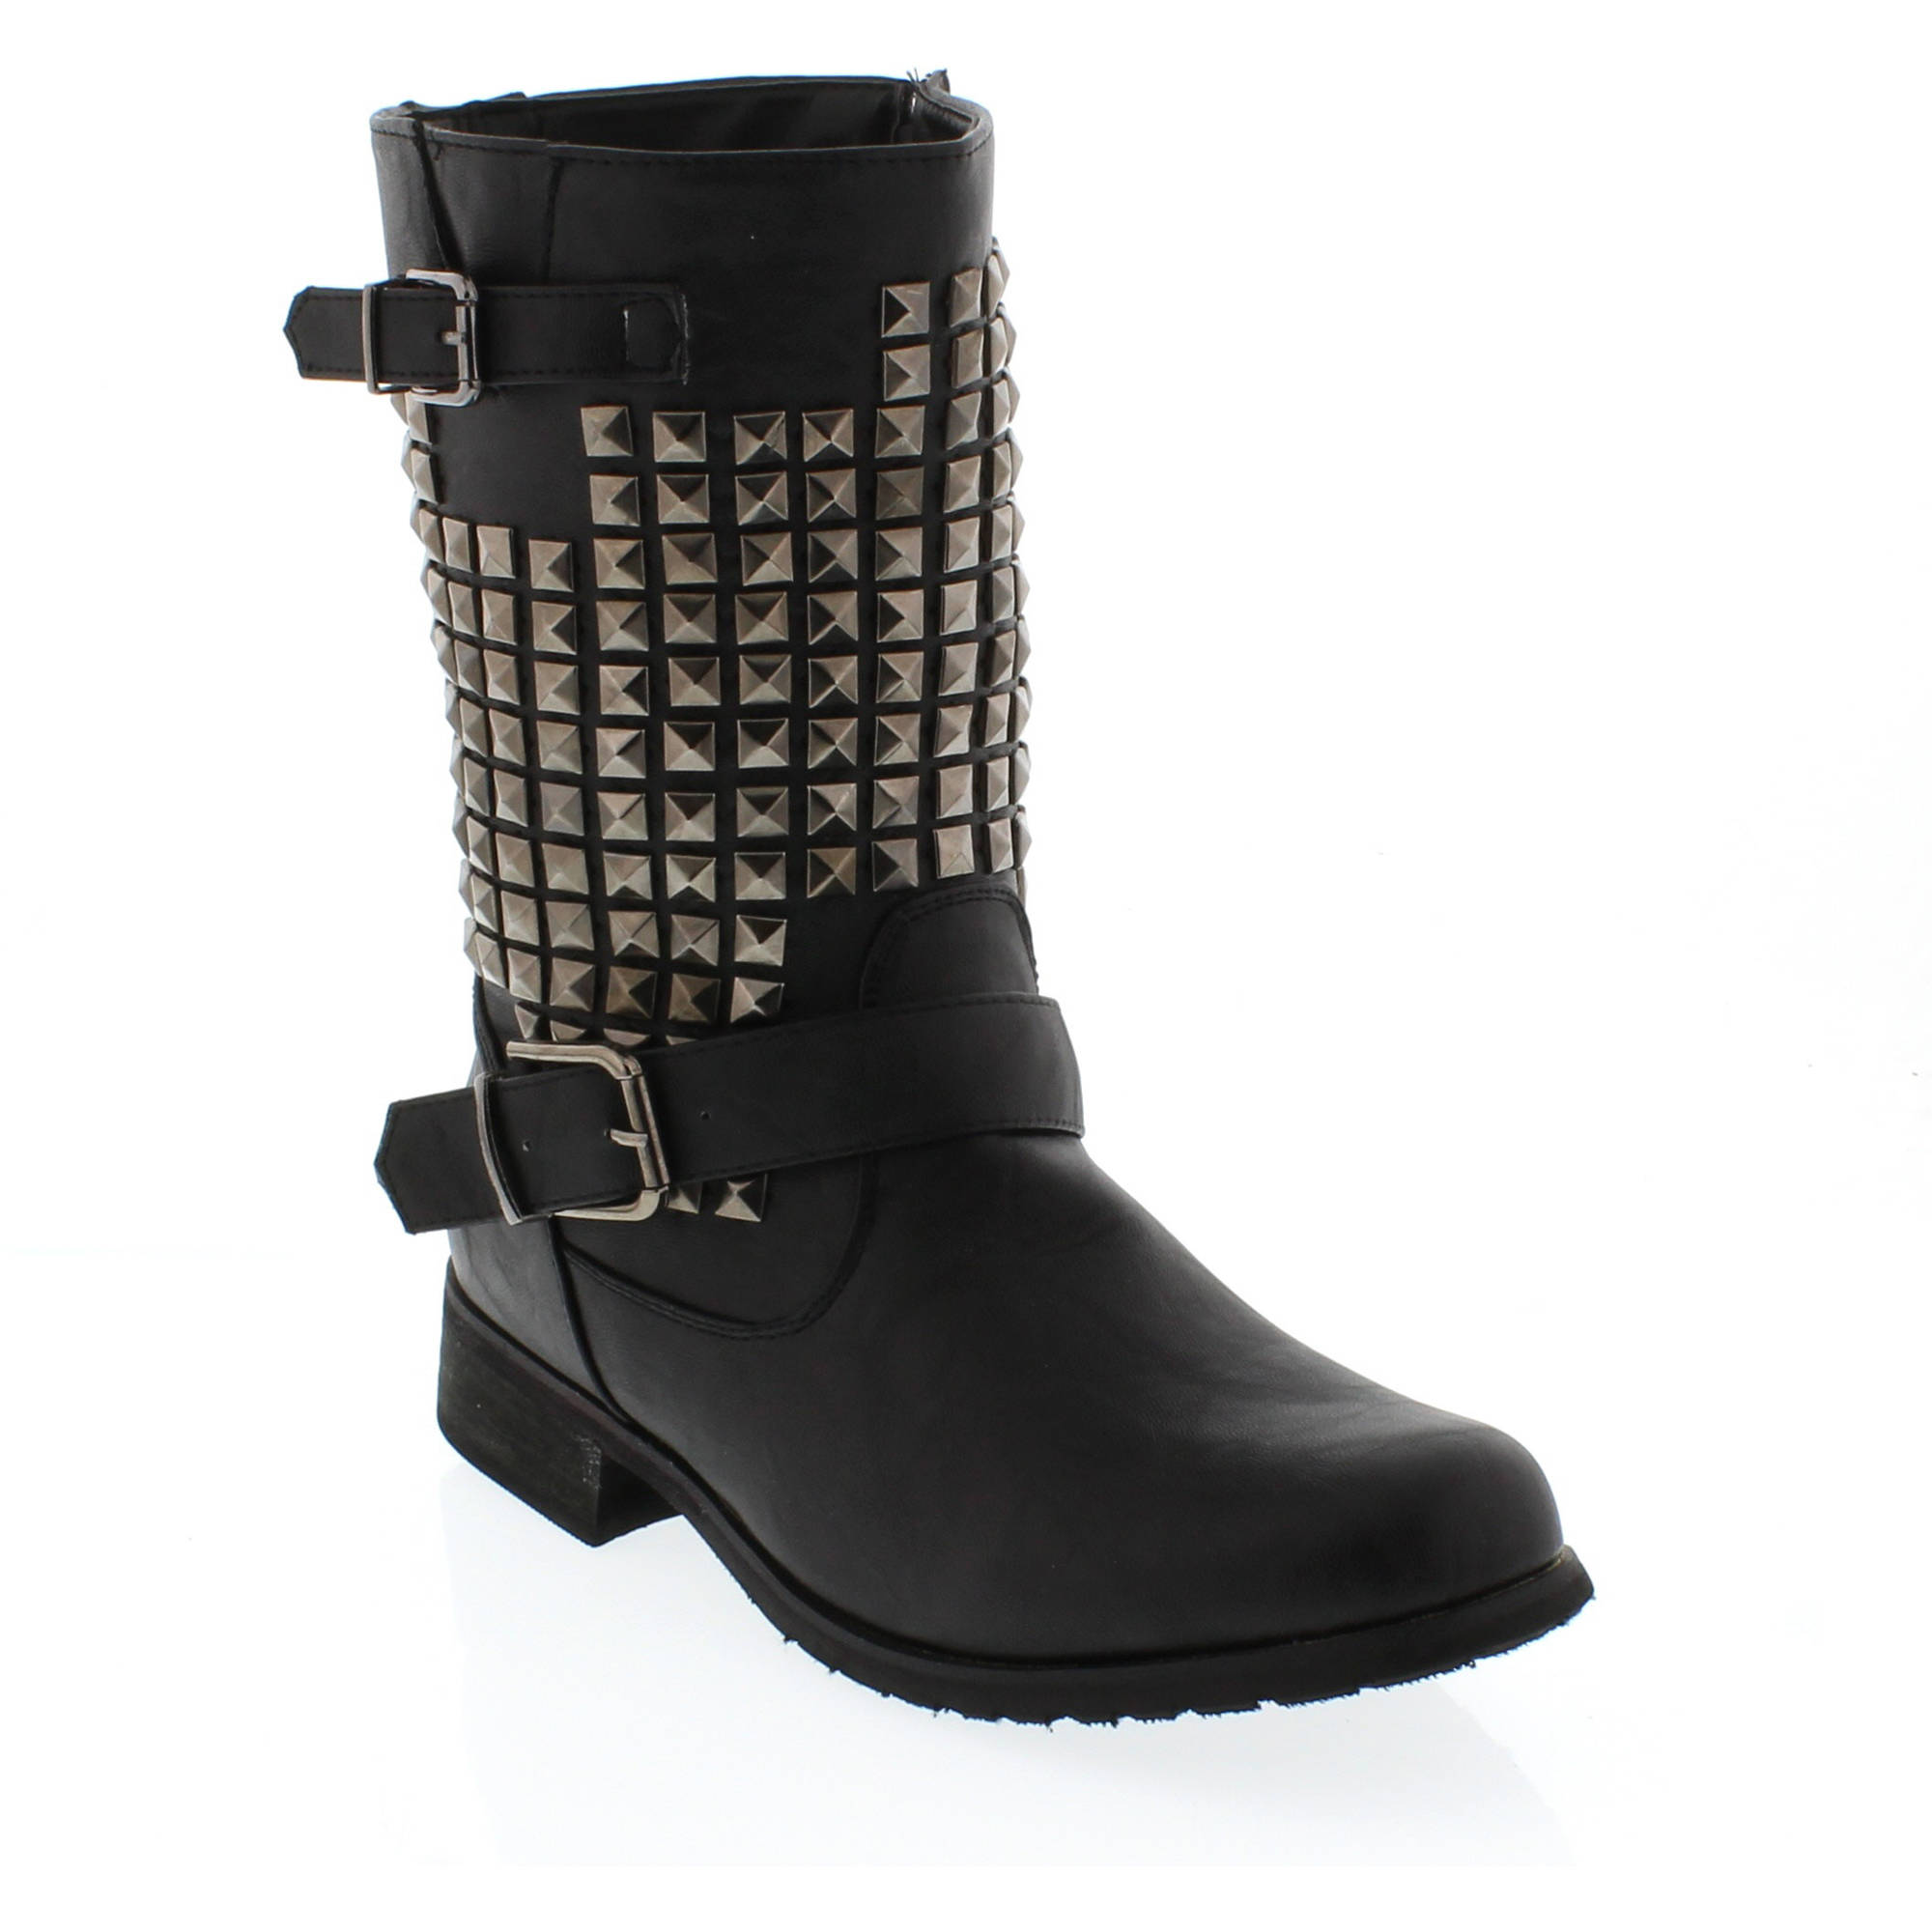 Shoes of Soul Women's Two Buckle Studded Boots